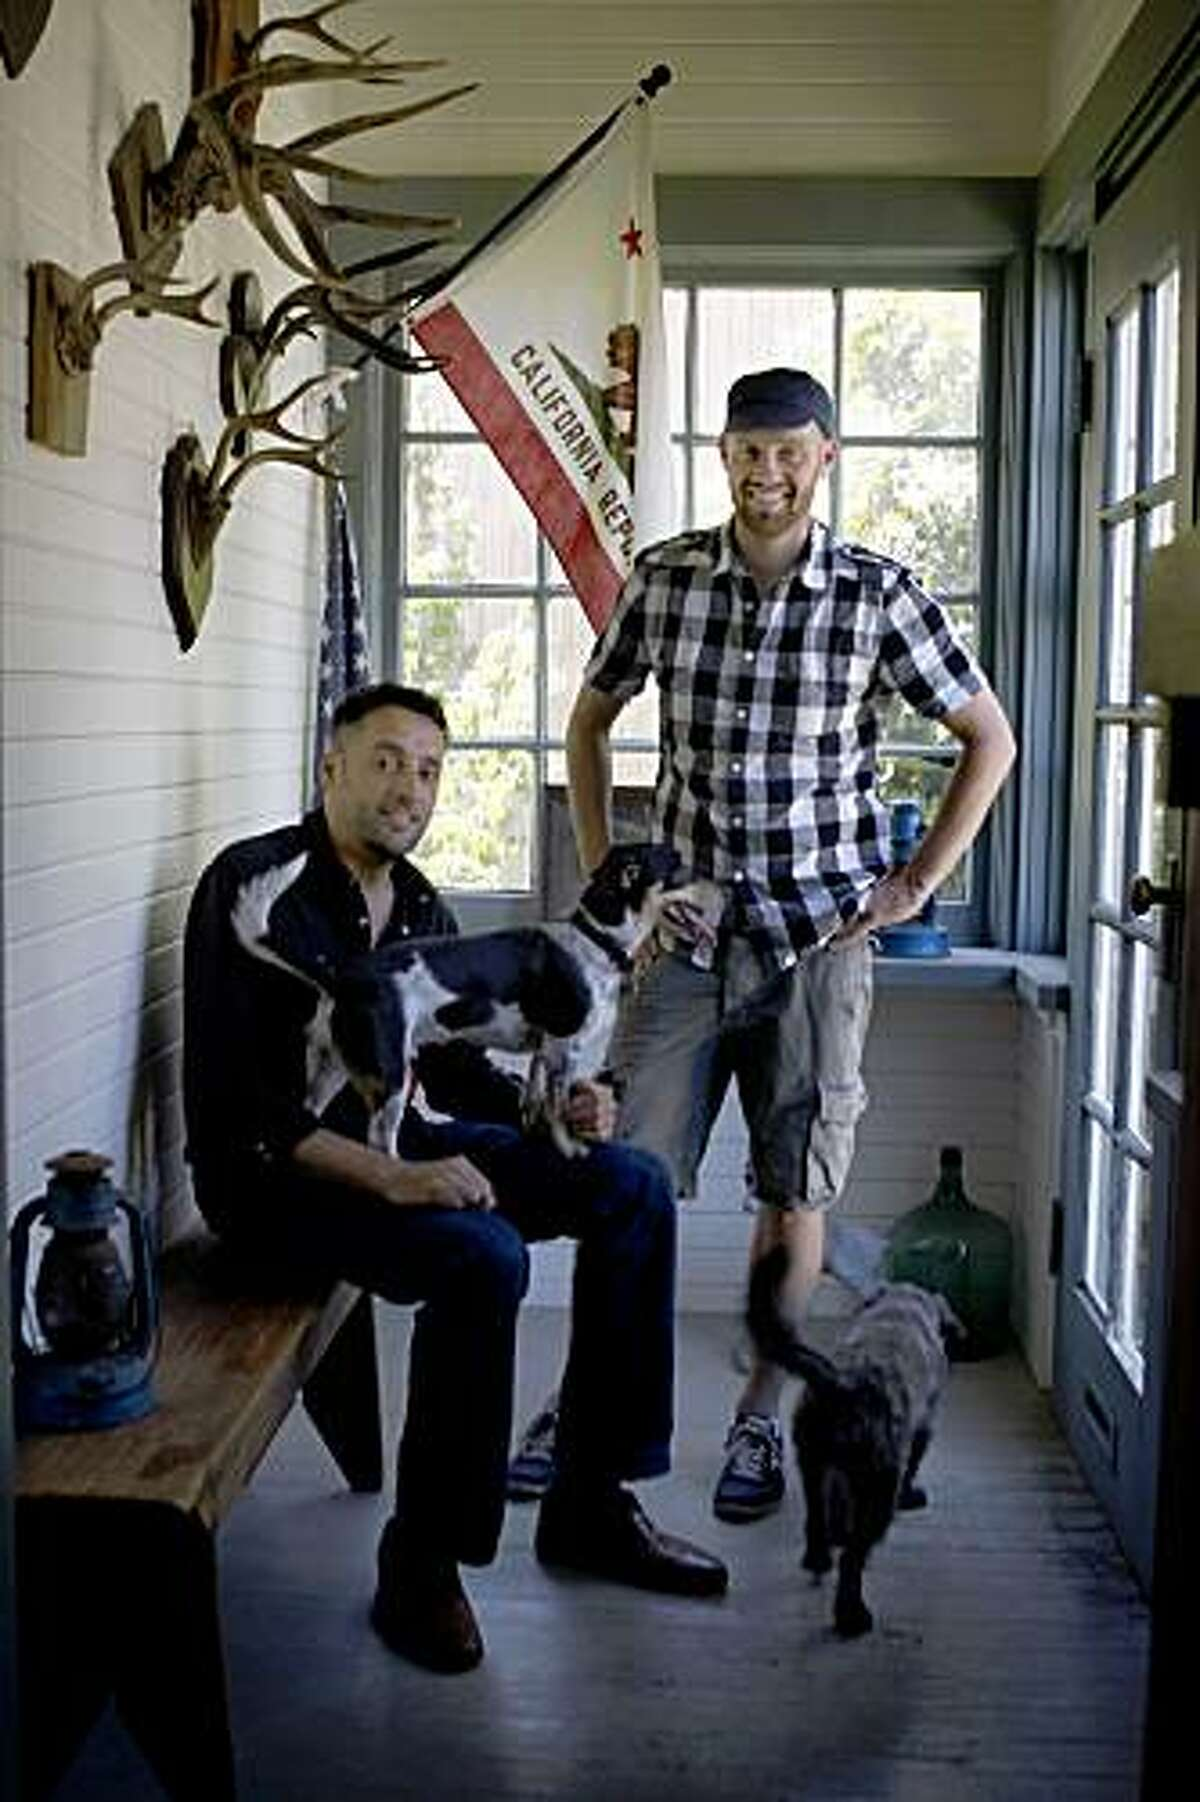 Photo stylist Rod Hipskind (right) and candy maker David Williams (left) at home with Henry (right) and Gus (left) in San Francisco, Calif., on Tuesday, July 14, 2009.